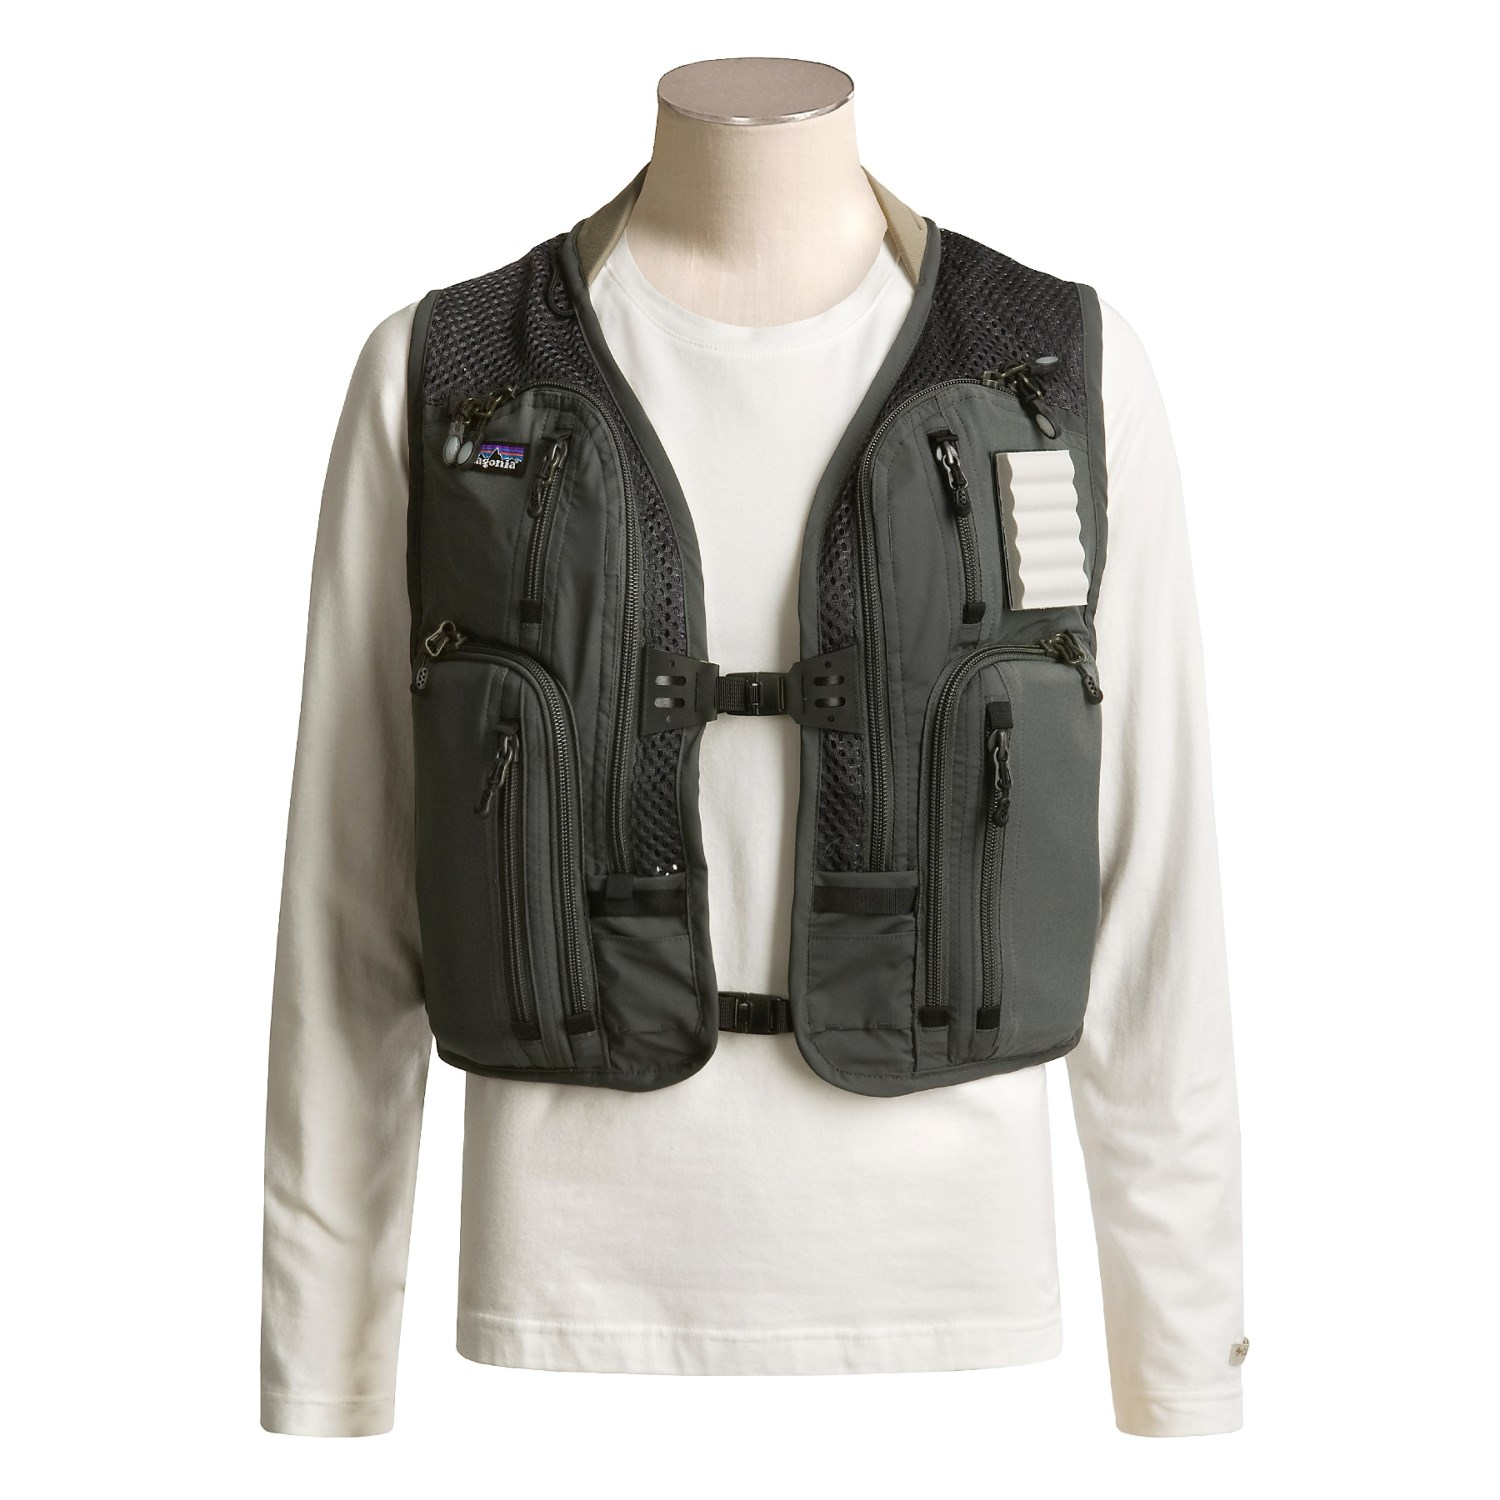 patagonia riverwalker fly fishing vest for women 1899a